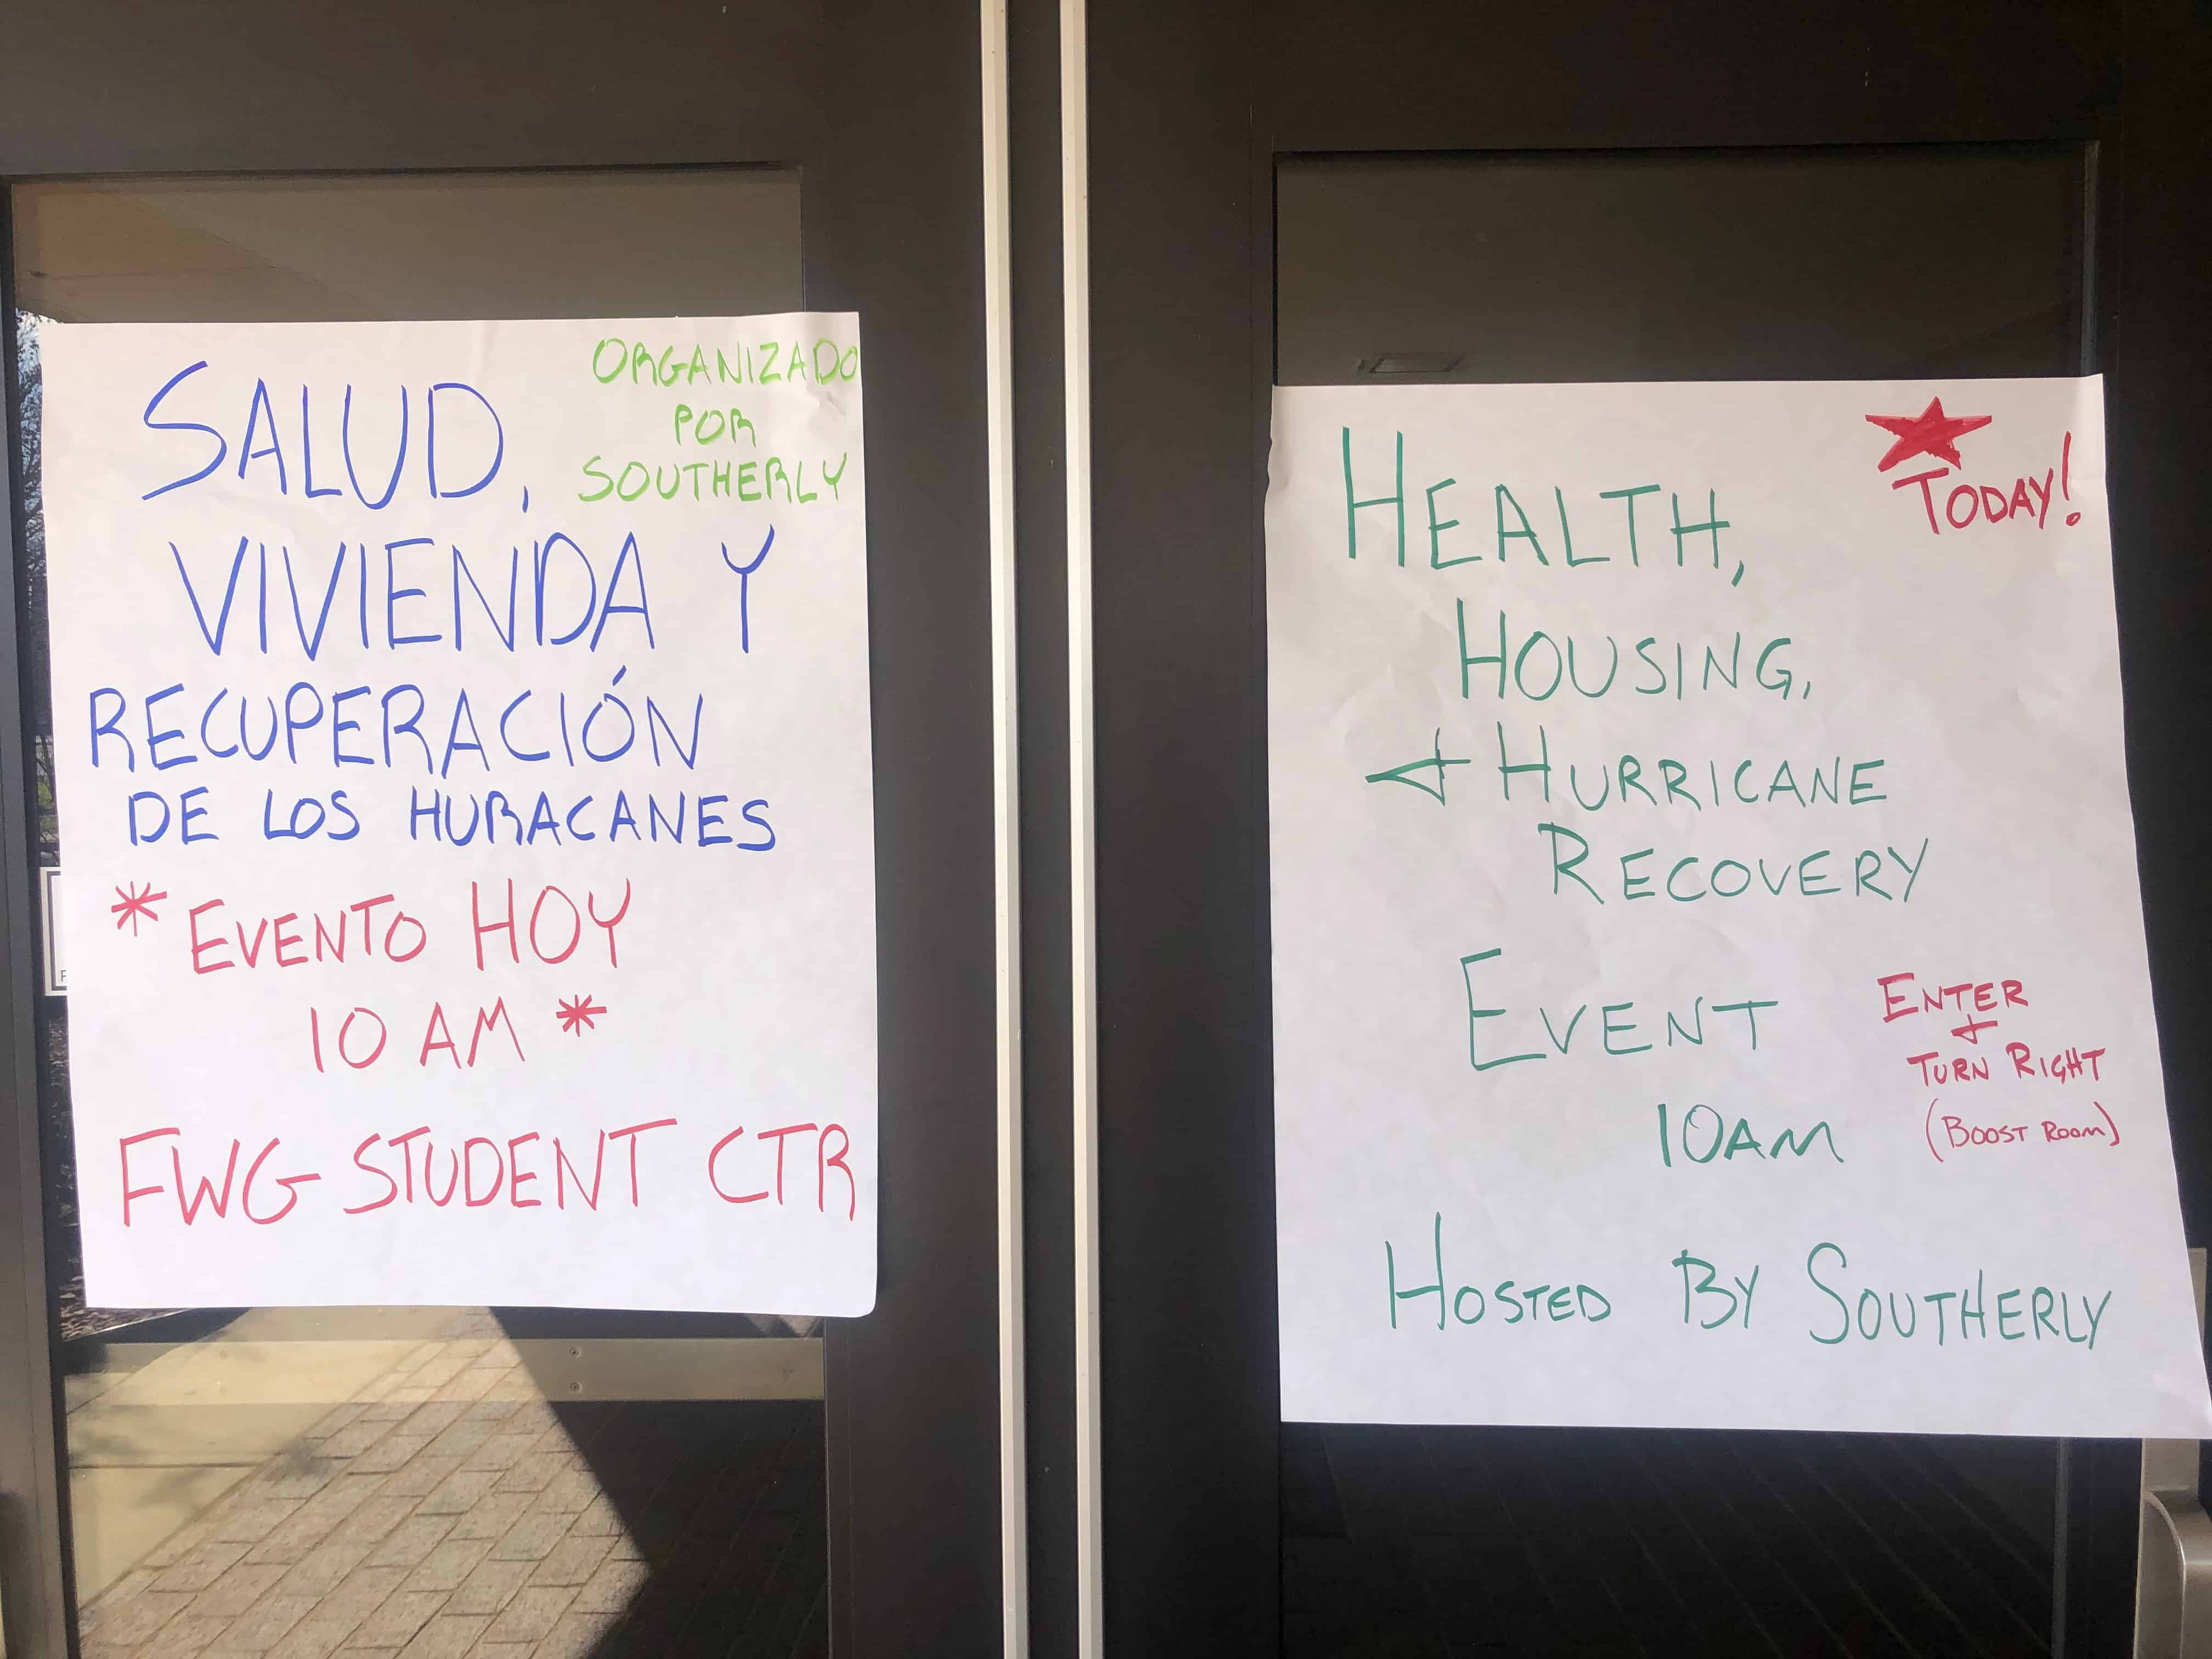 Signs on door at event